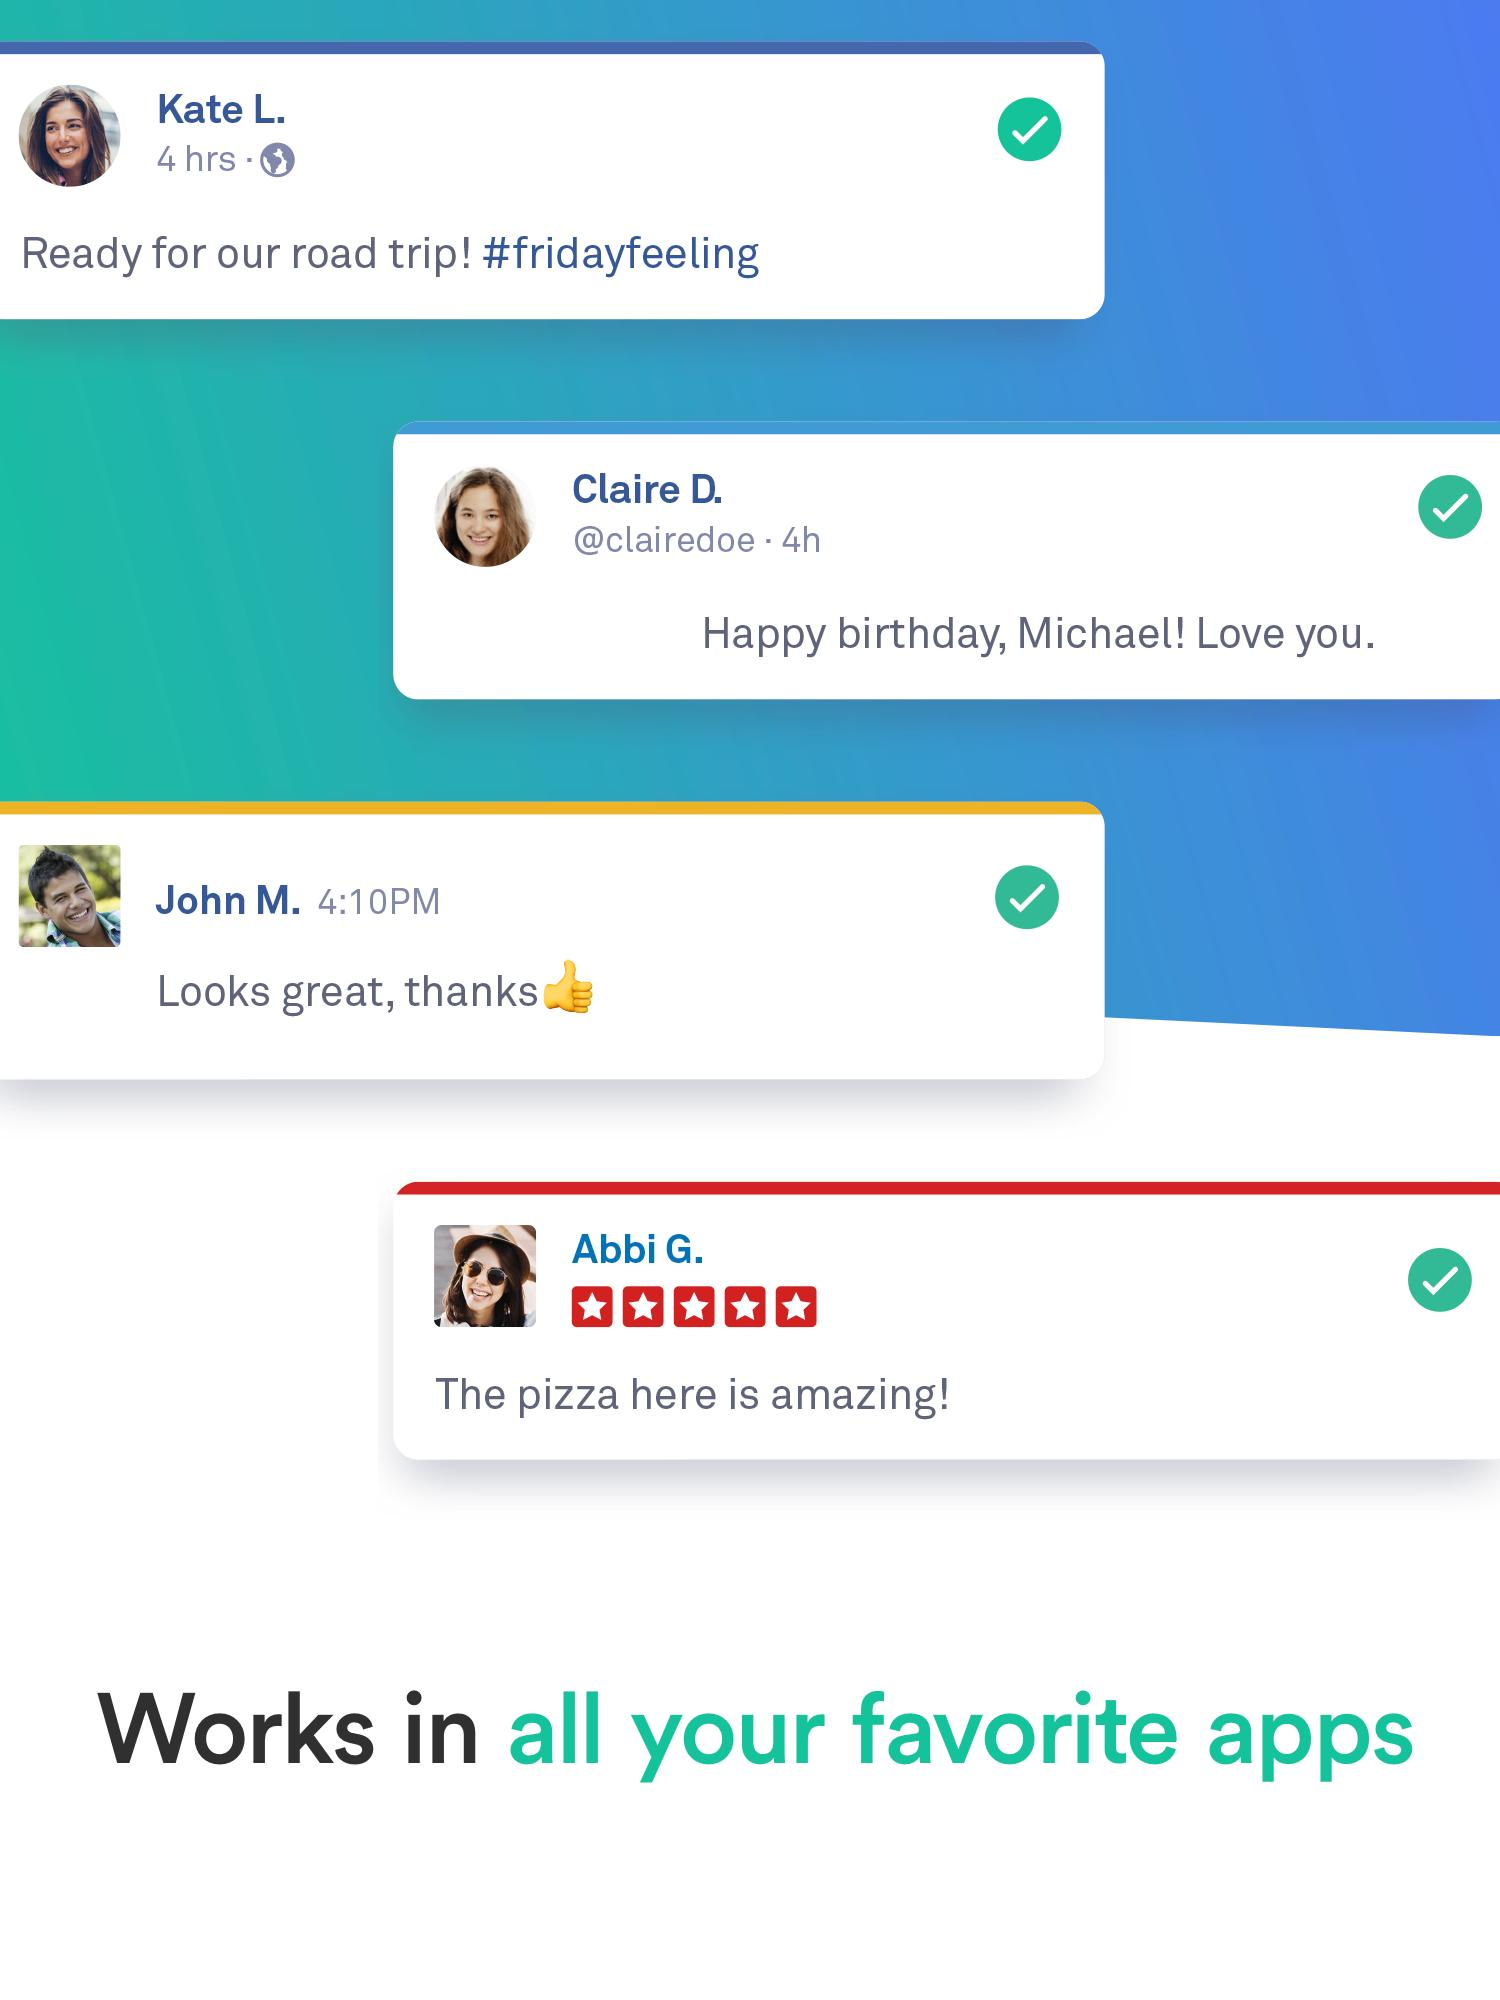 Grammarly Keyboard — Type with confidence 1.4.0.7 Screenshot 18